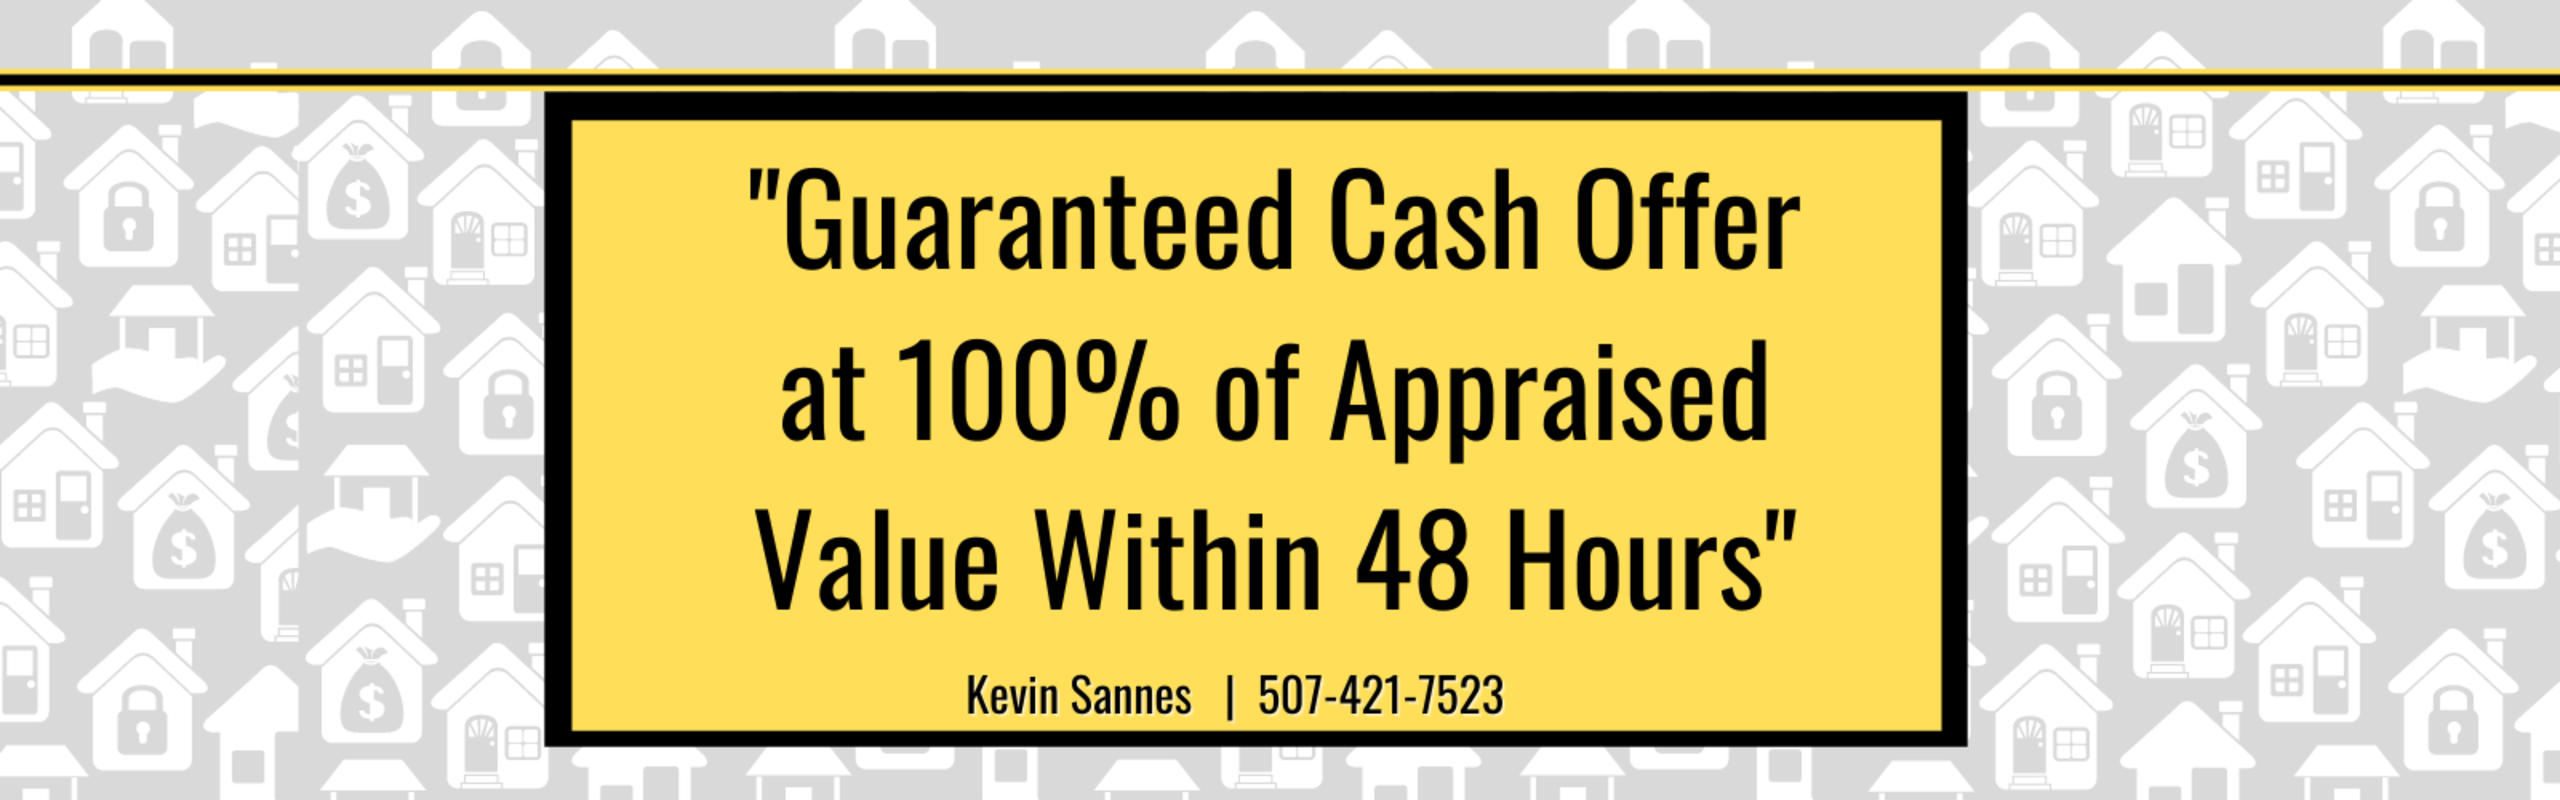 Guaranteed Cash Offer- 100% of Appraised